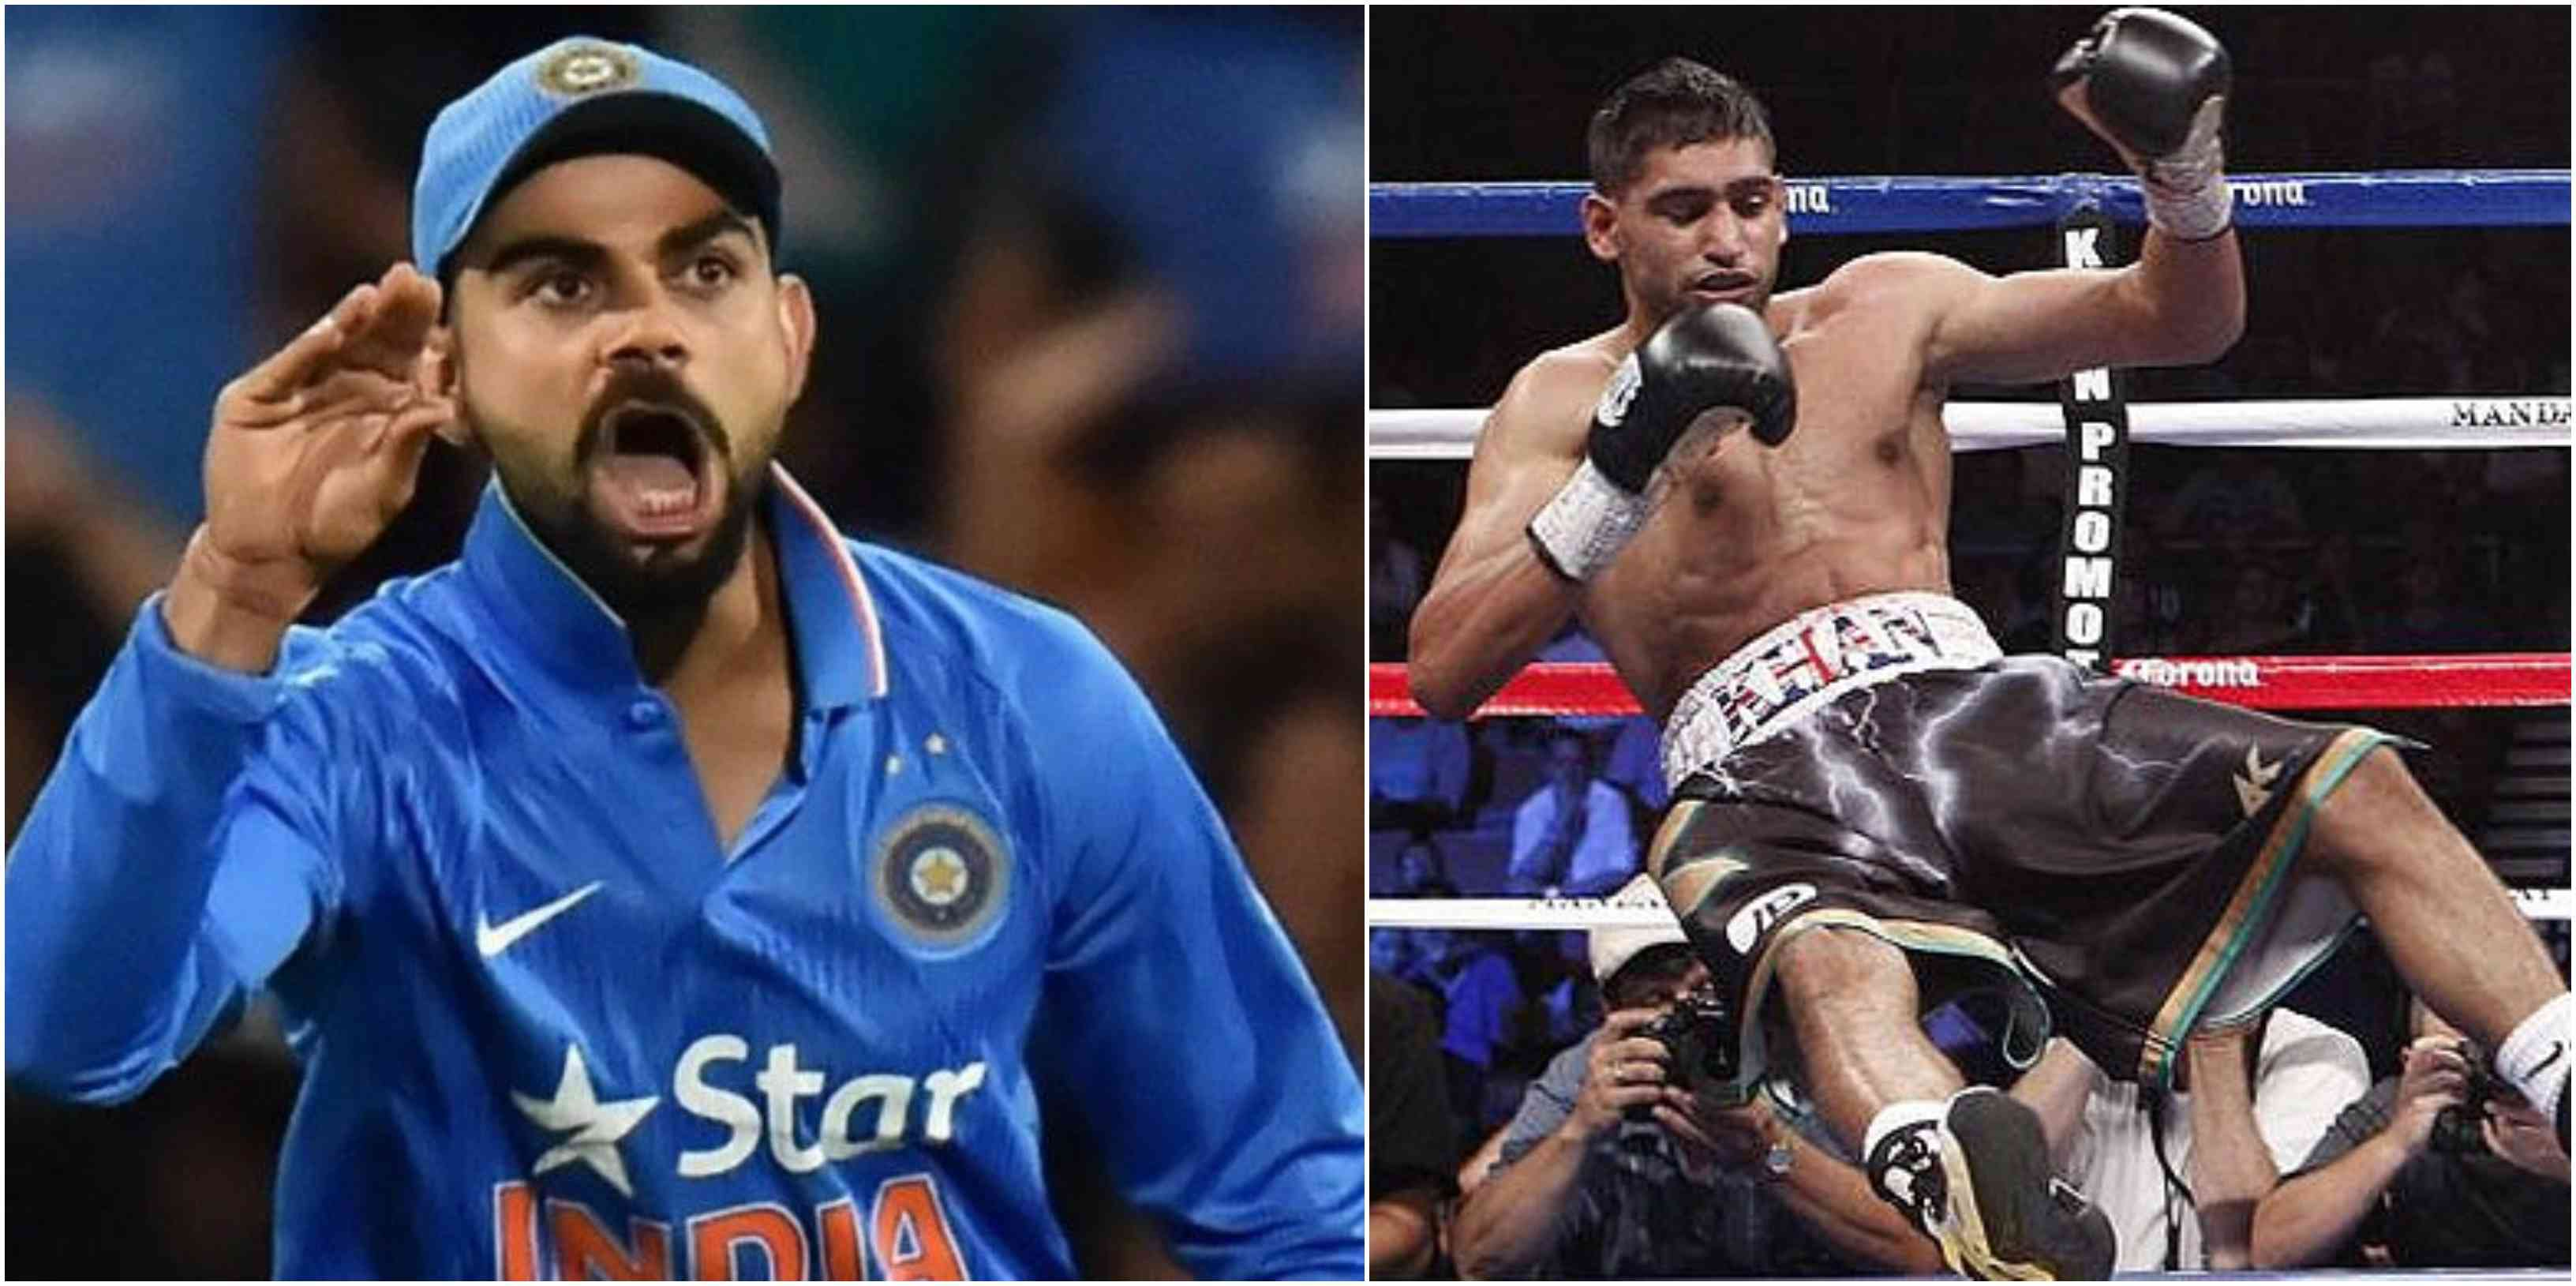 Amir Khan says he will avenge Pakistan's loss to India by knocking out Neeraj Goyat - India